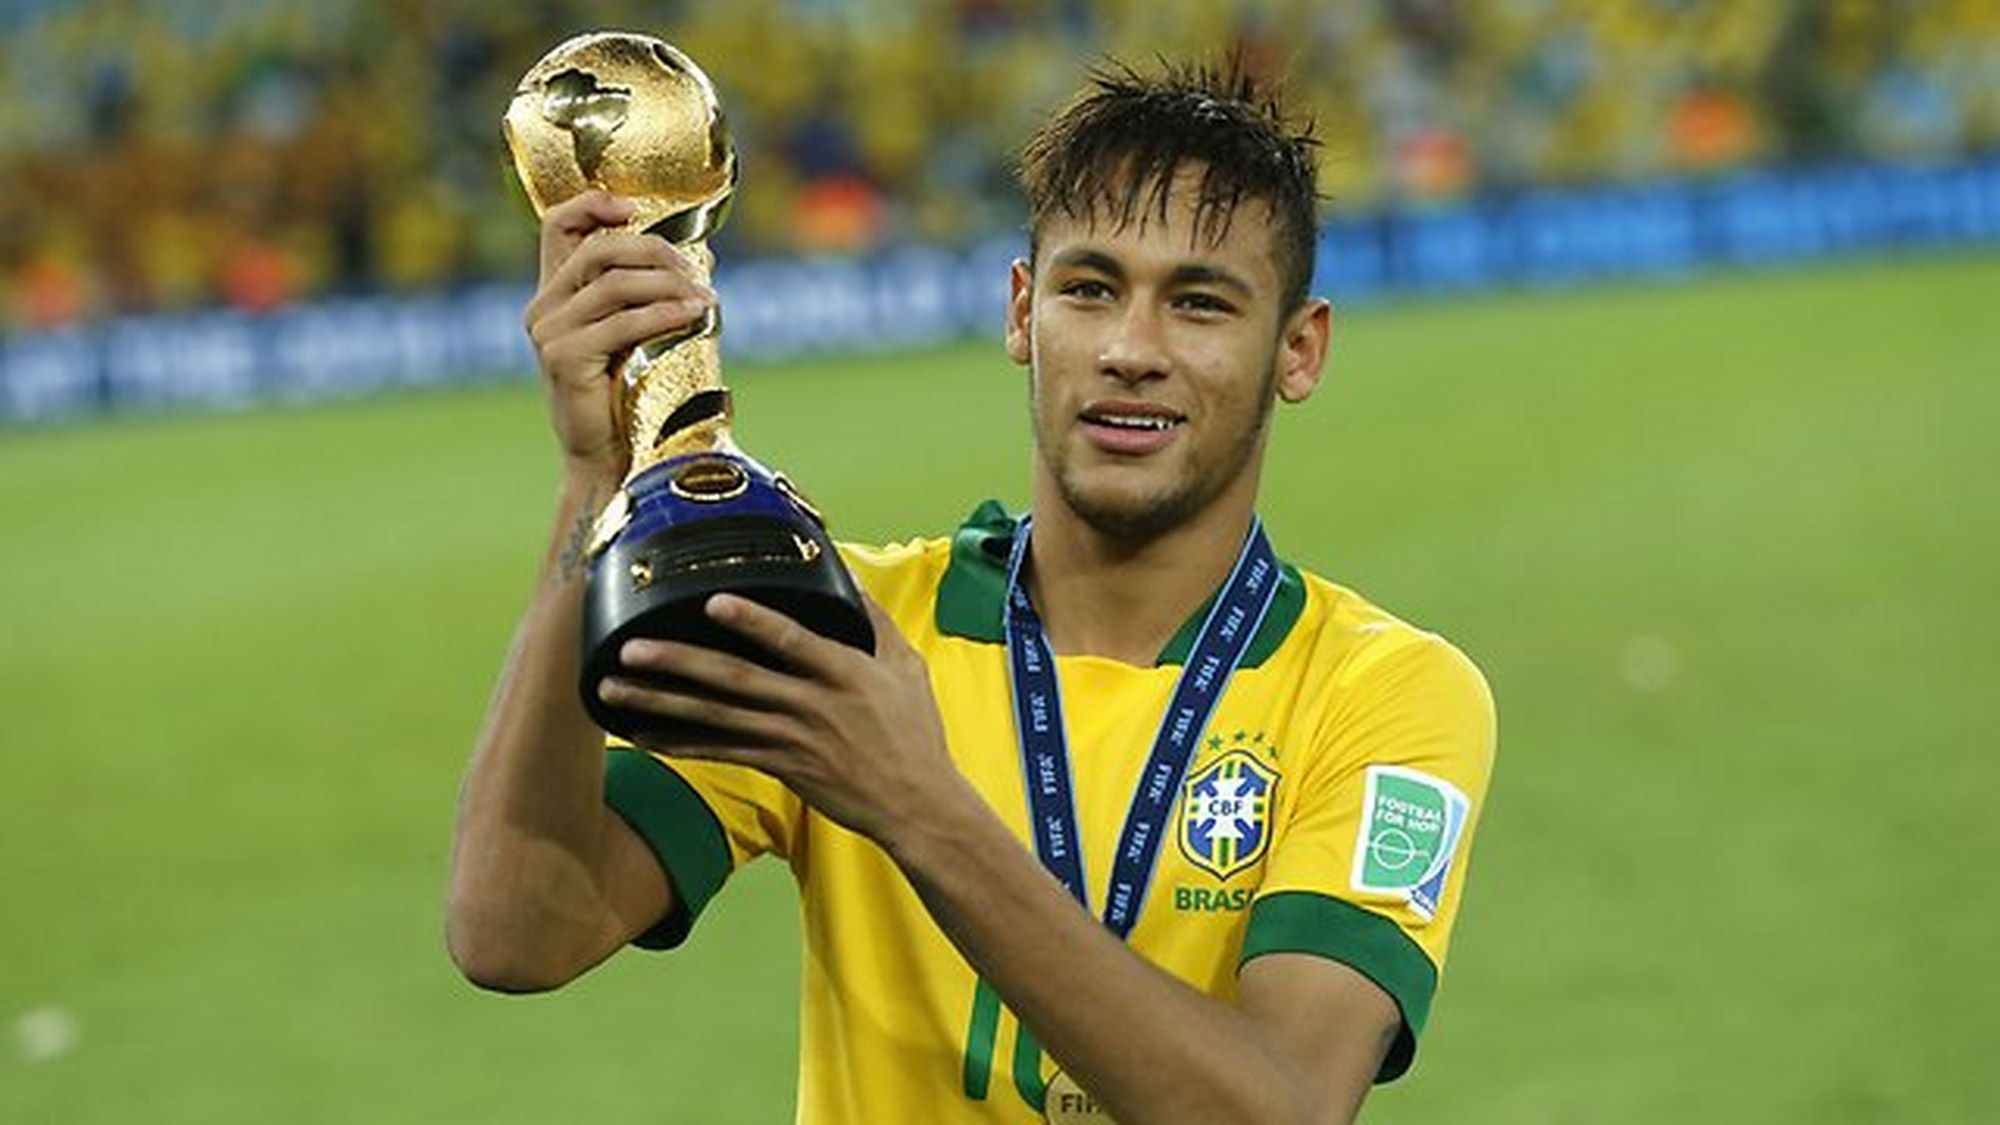 Hd wallpaper neymar - Neymar Baercelona Wallpaper Photo With Hd Wallpaper Resolution 1600 900 Neymar Wallpaper 53 Wallpapers